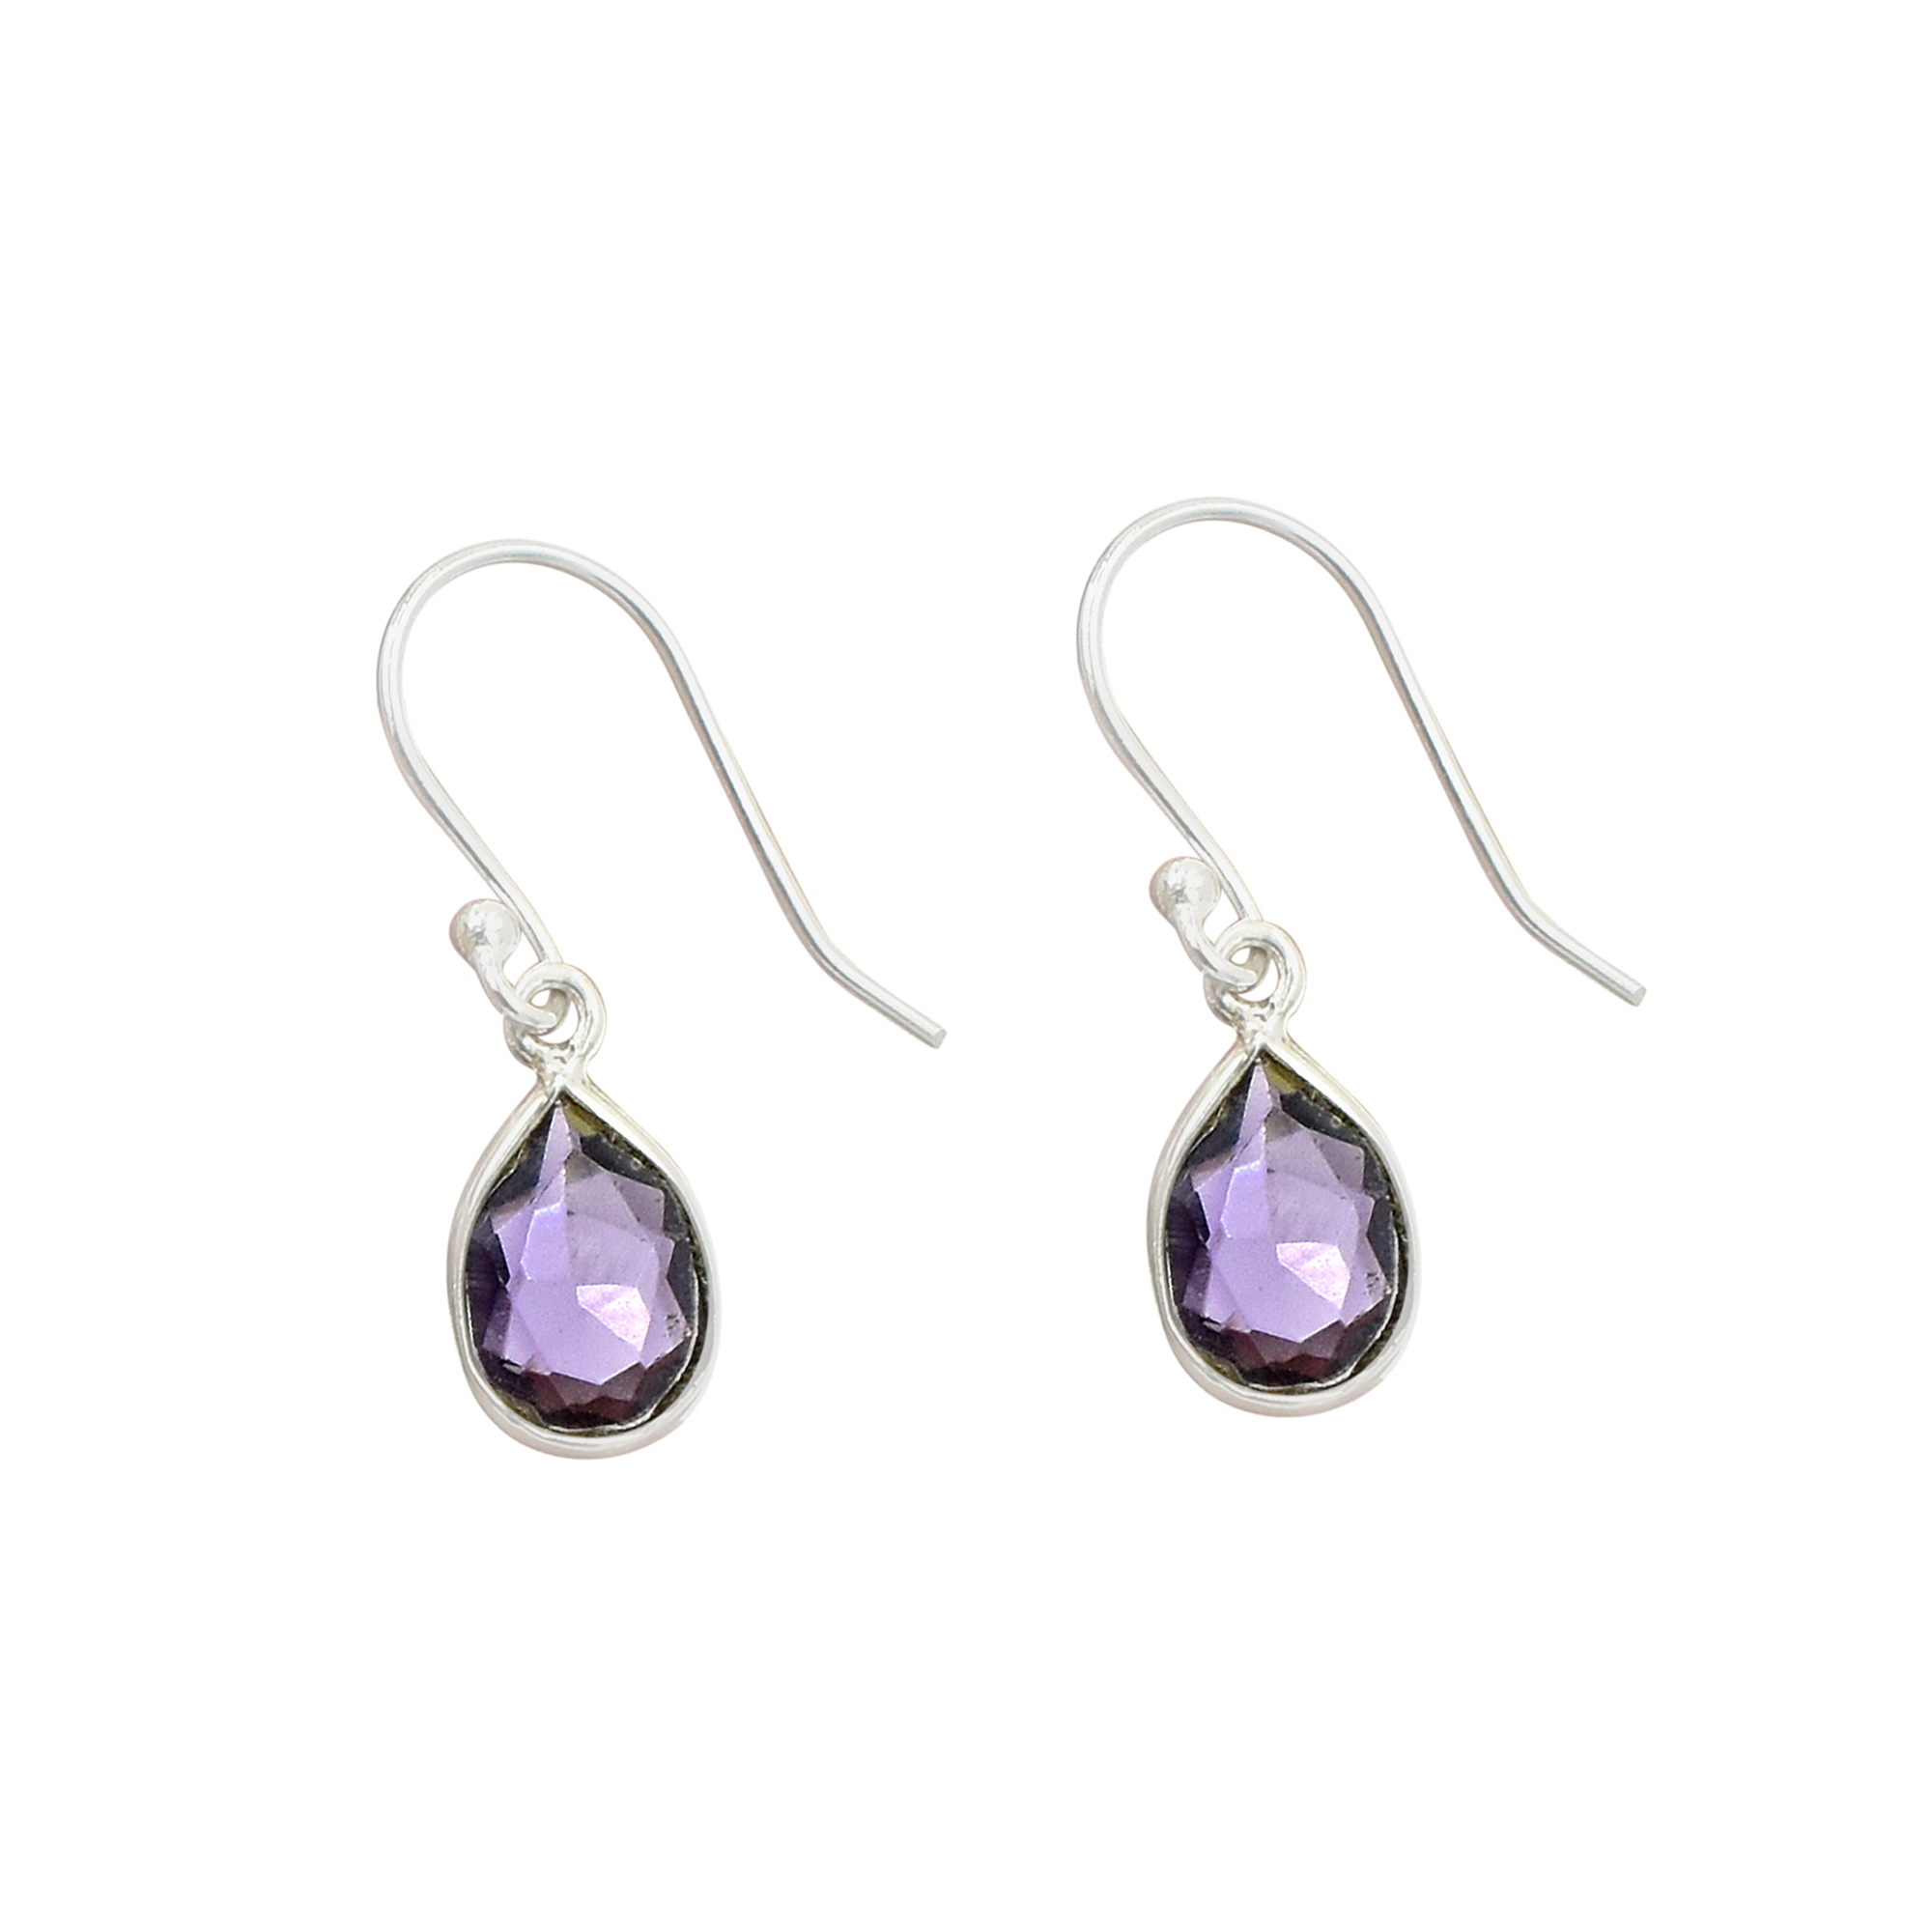 Natural Purple Amethyst Quartz Pear Shape Gemstone Earring 925 Sterling Silver Dangle Drop Fashion Earring